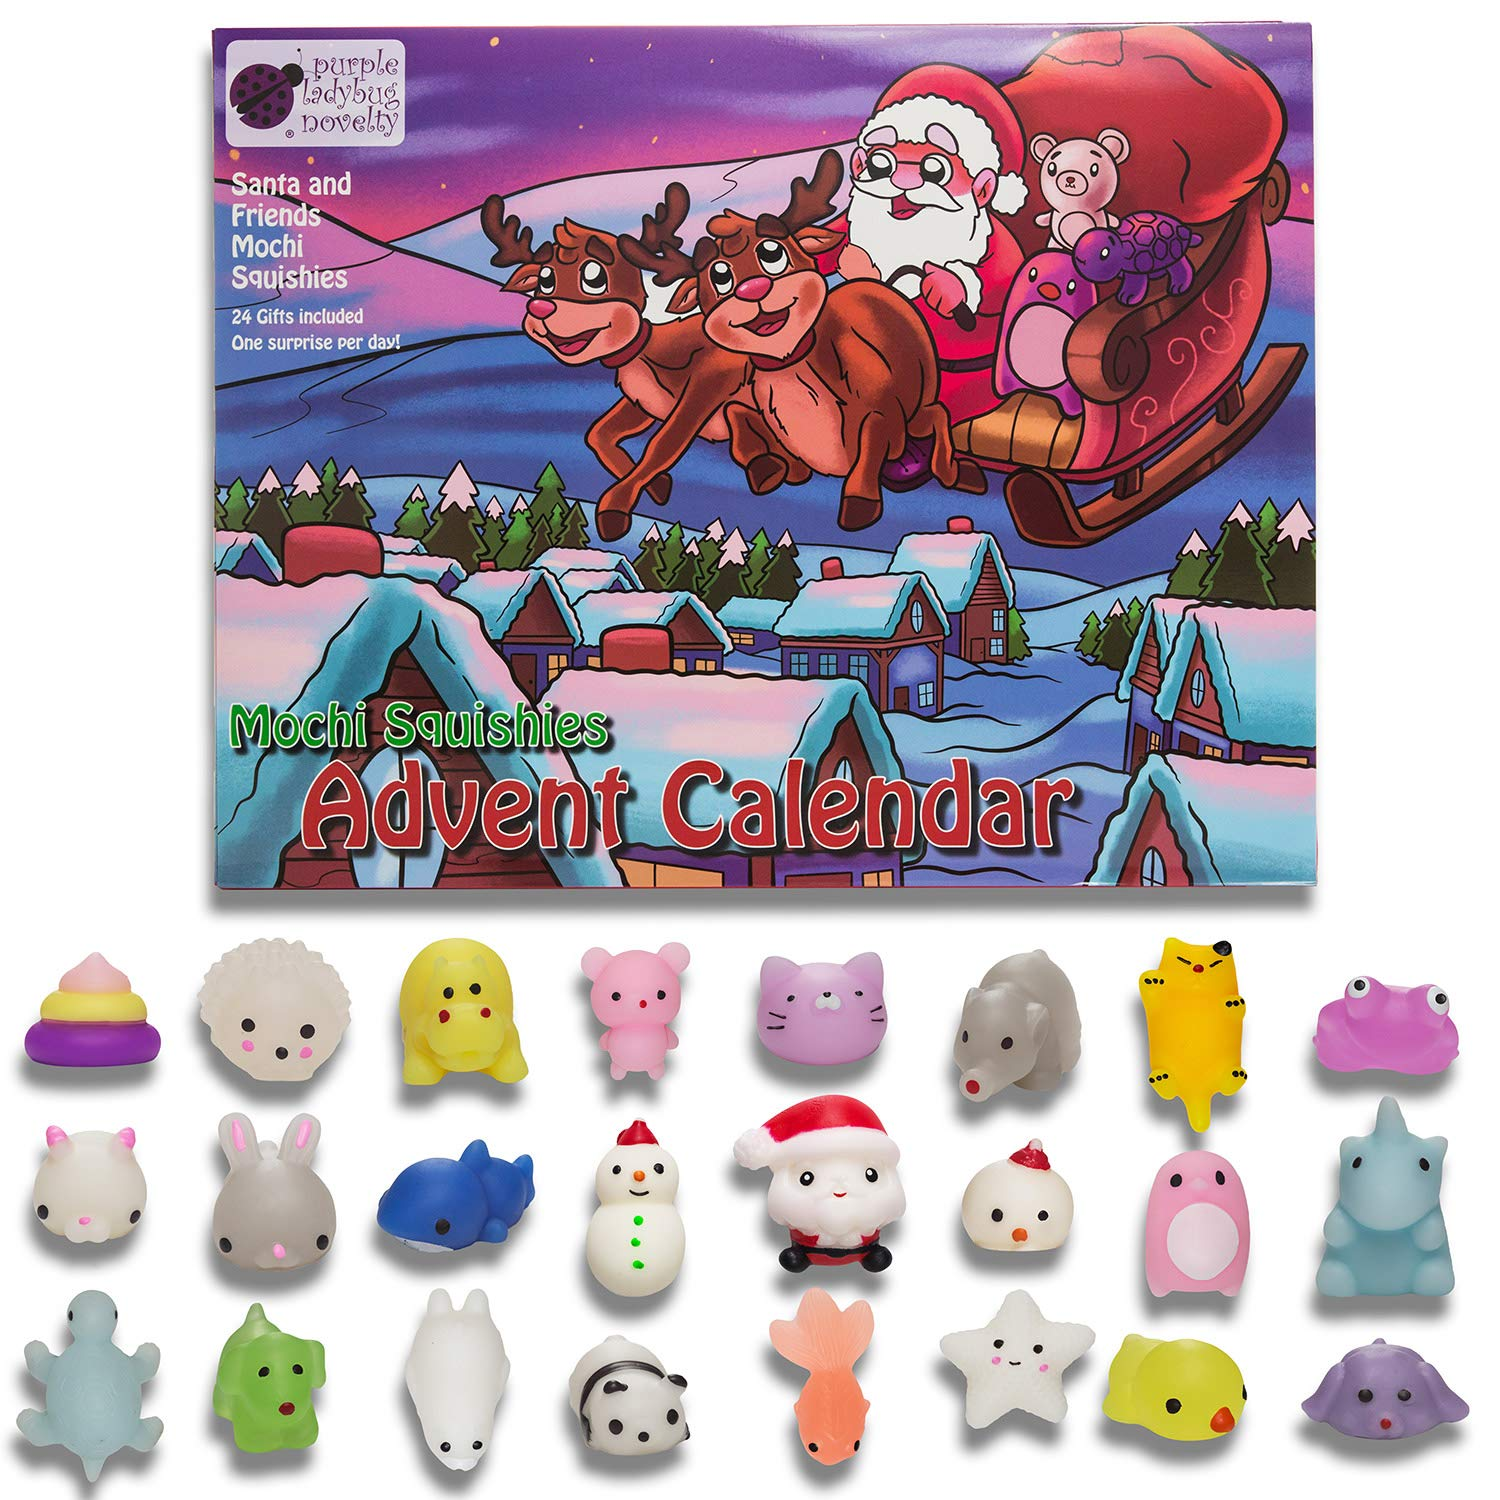 Toy Advent Calendar 2018 with 24 different cute mochi squishies including Santa! Super gift for girl, boy, all children! 24 kawaii squishy toys! SANTA'S WORKSHOP Toy Advent Calendars Purple Ladybug Novelty